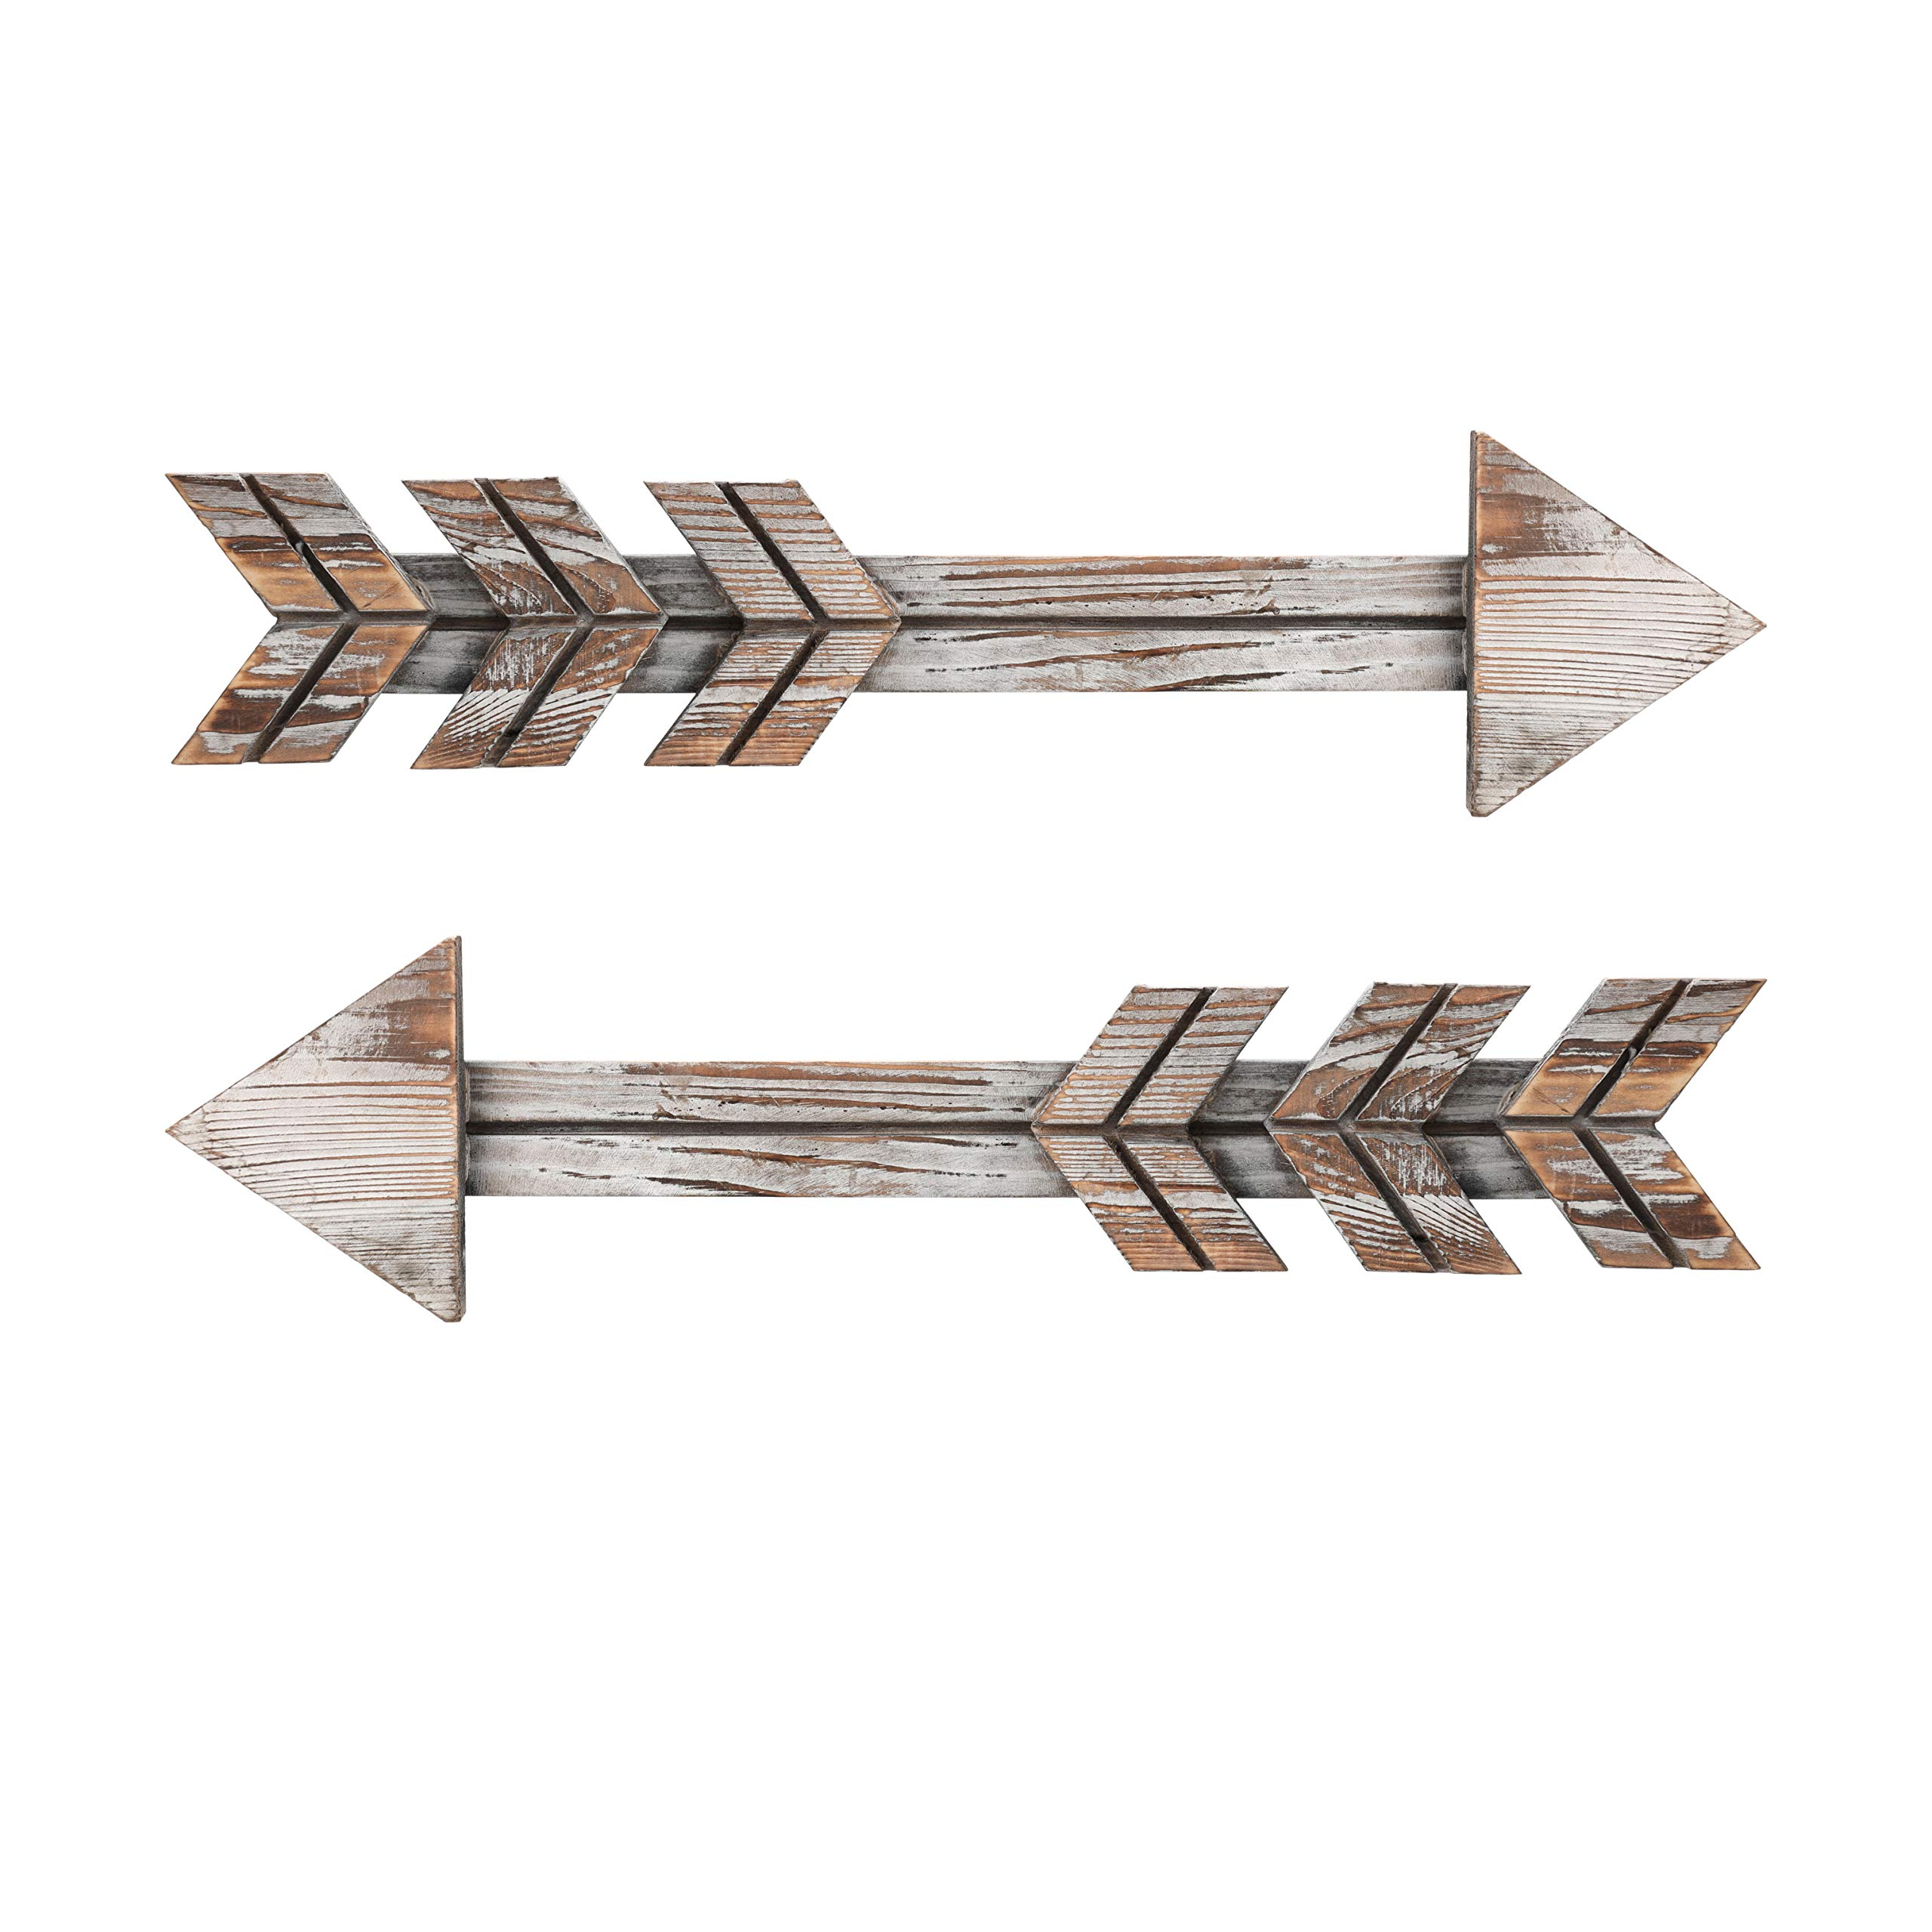 Soonow Wooden Arrow Wall Decor - Rustic Wood Arrow Sign, Set of 2, Vintage White